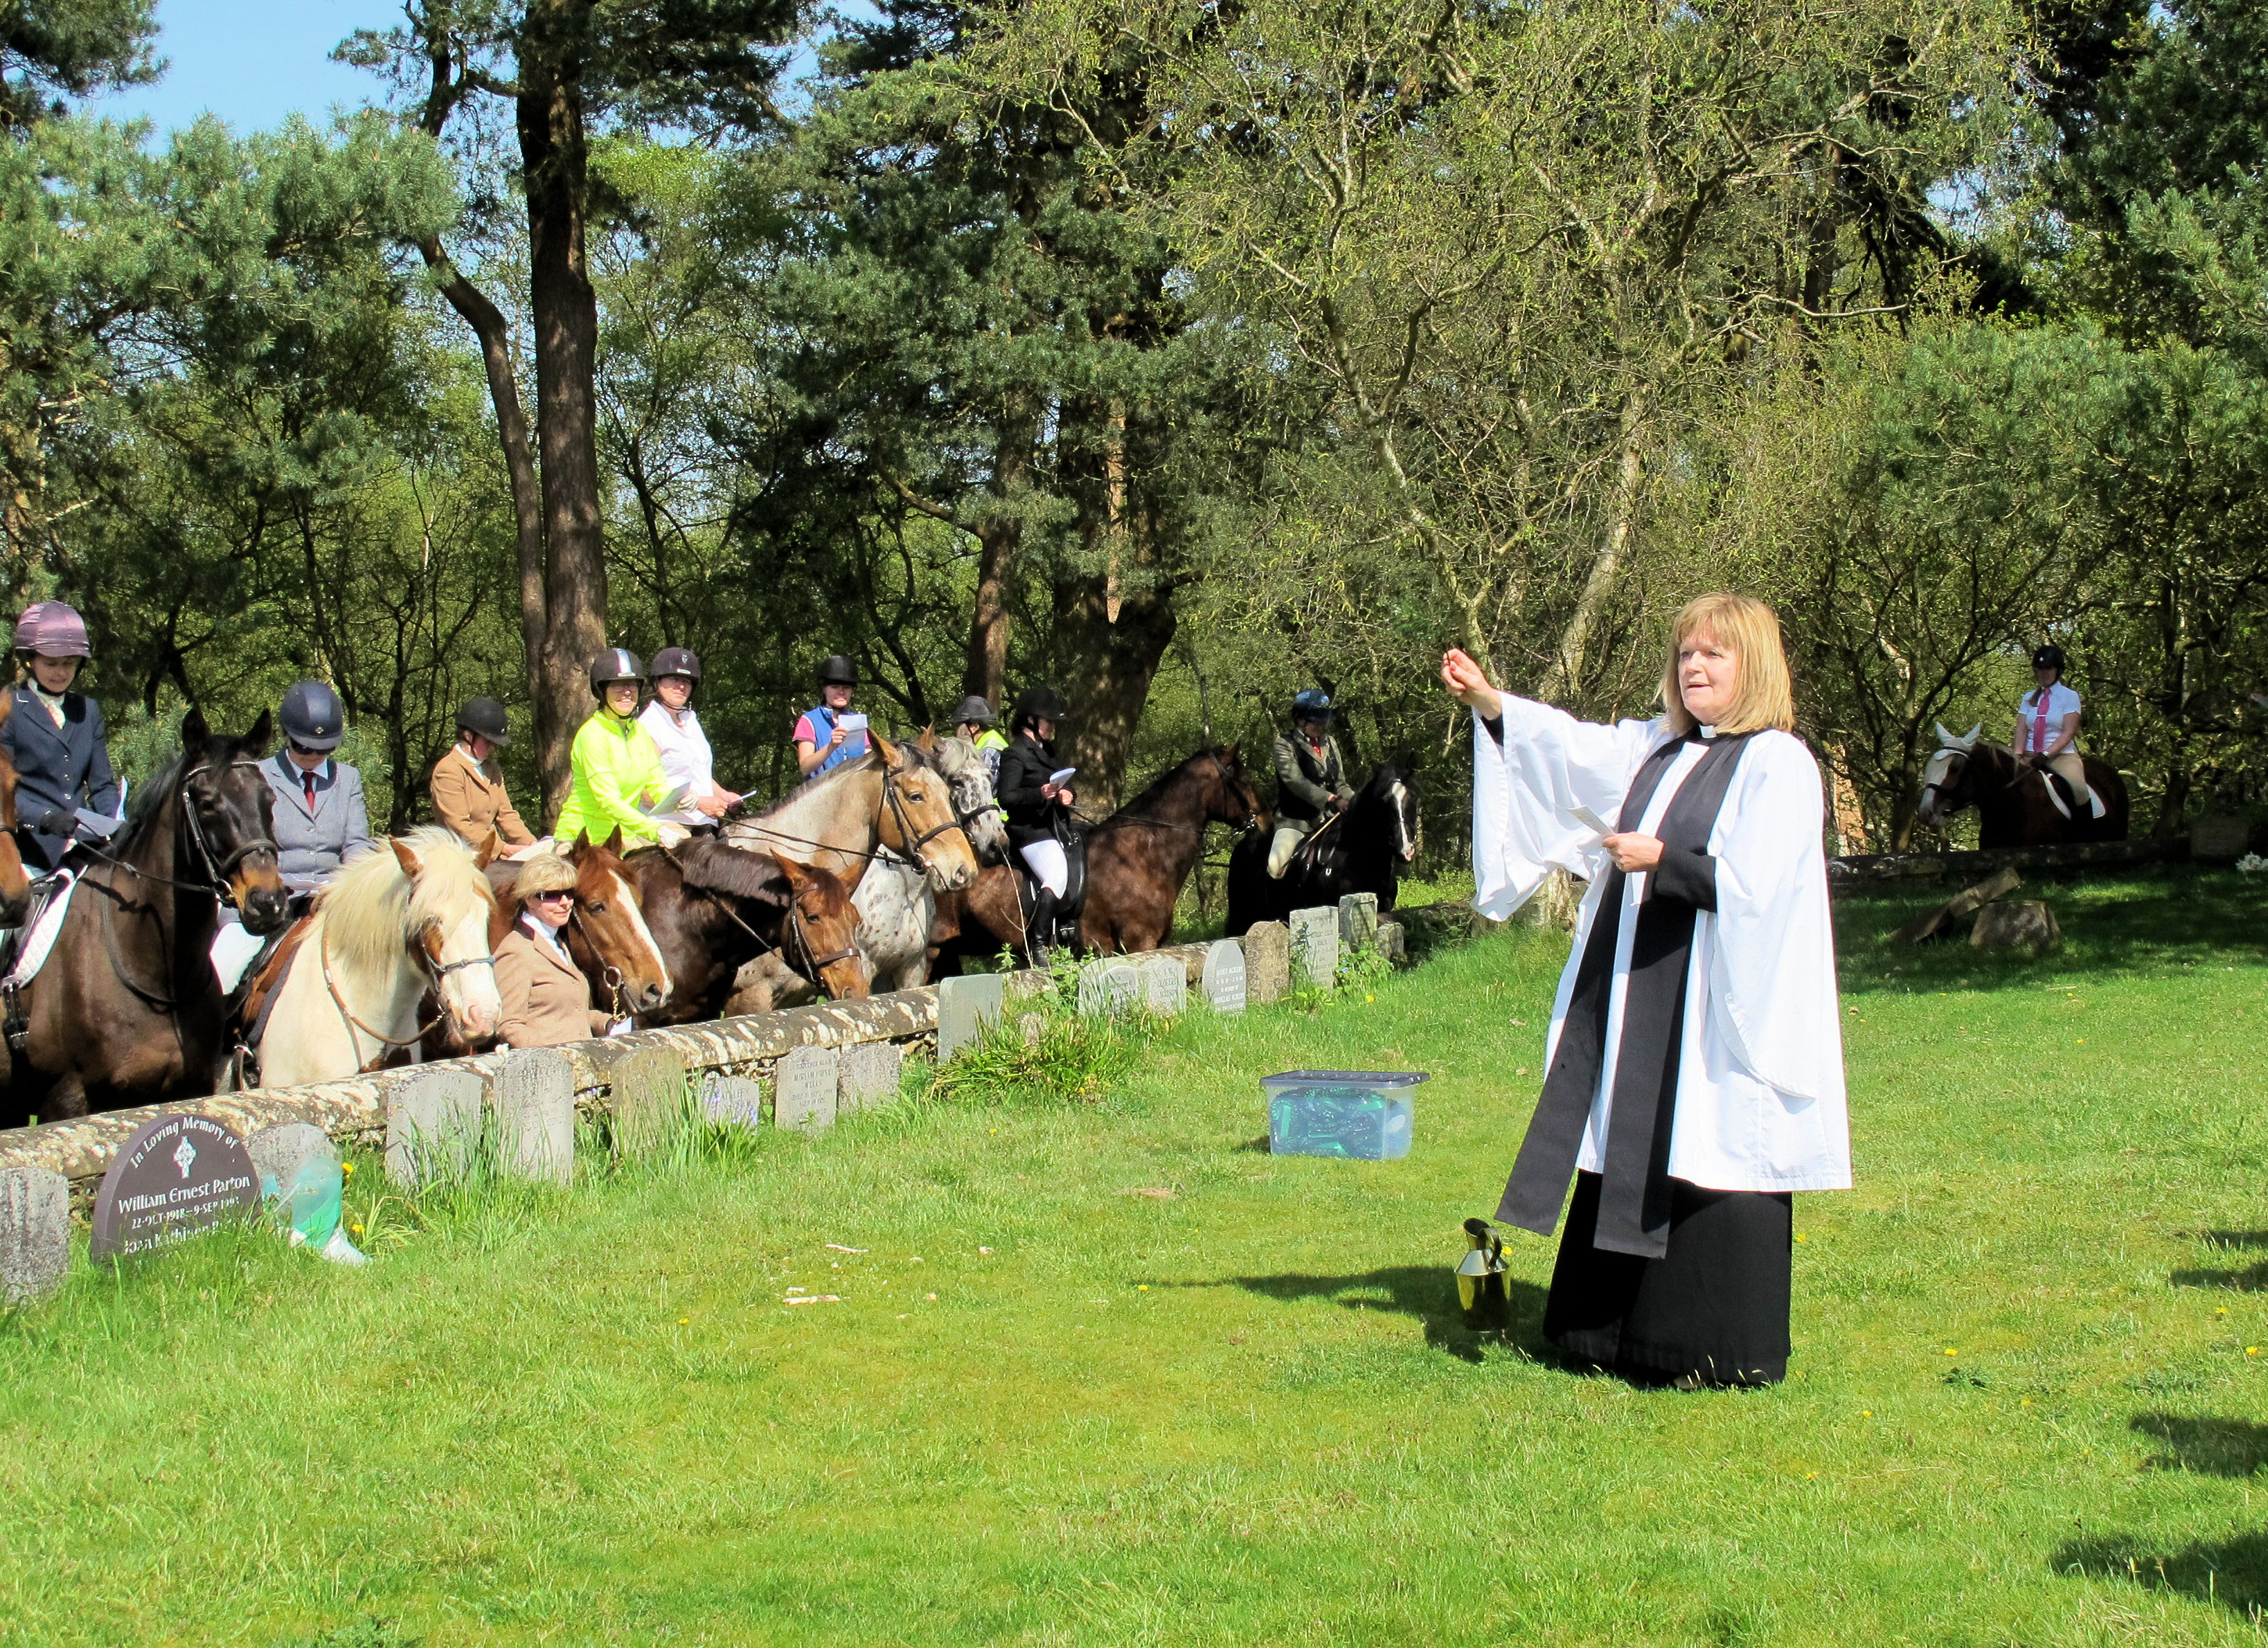 Reverend Stephanie Sokolowski conducting the service (photo by Denise Furlonger)